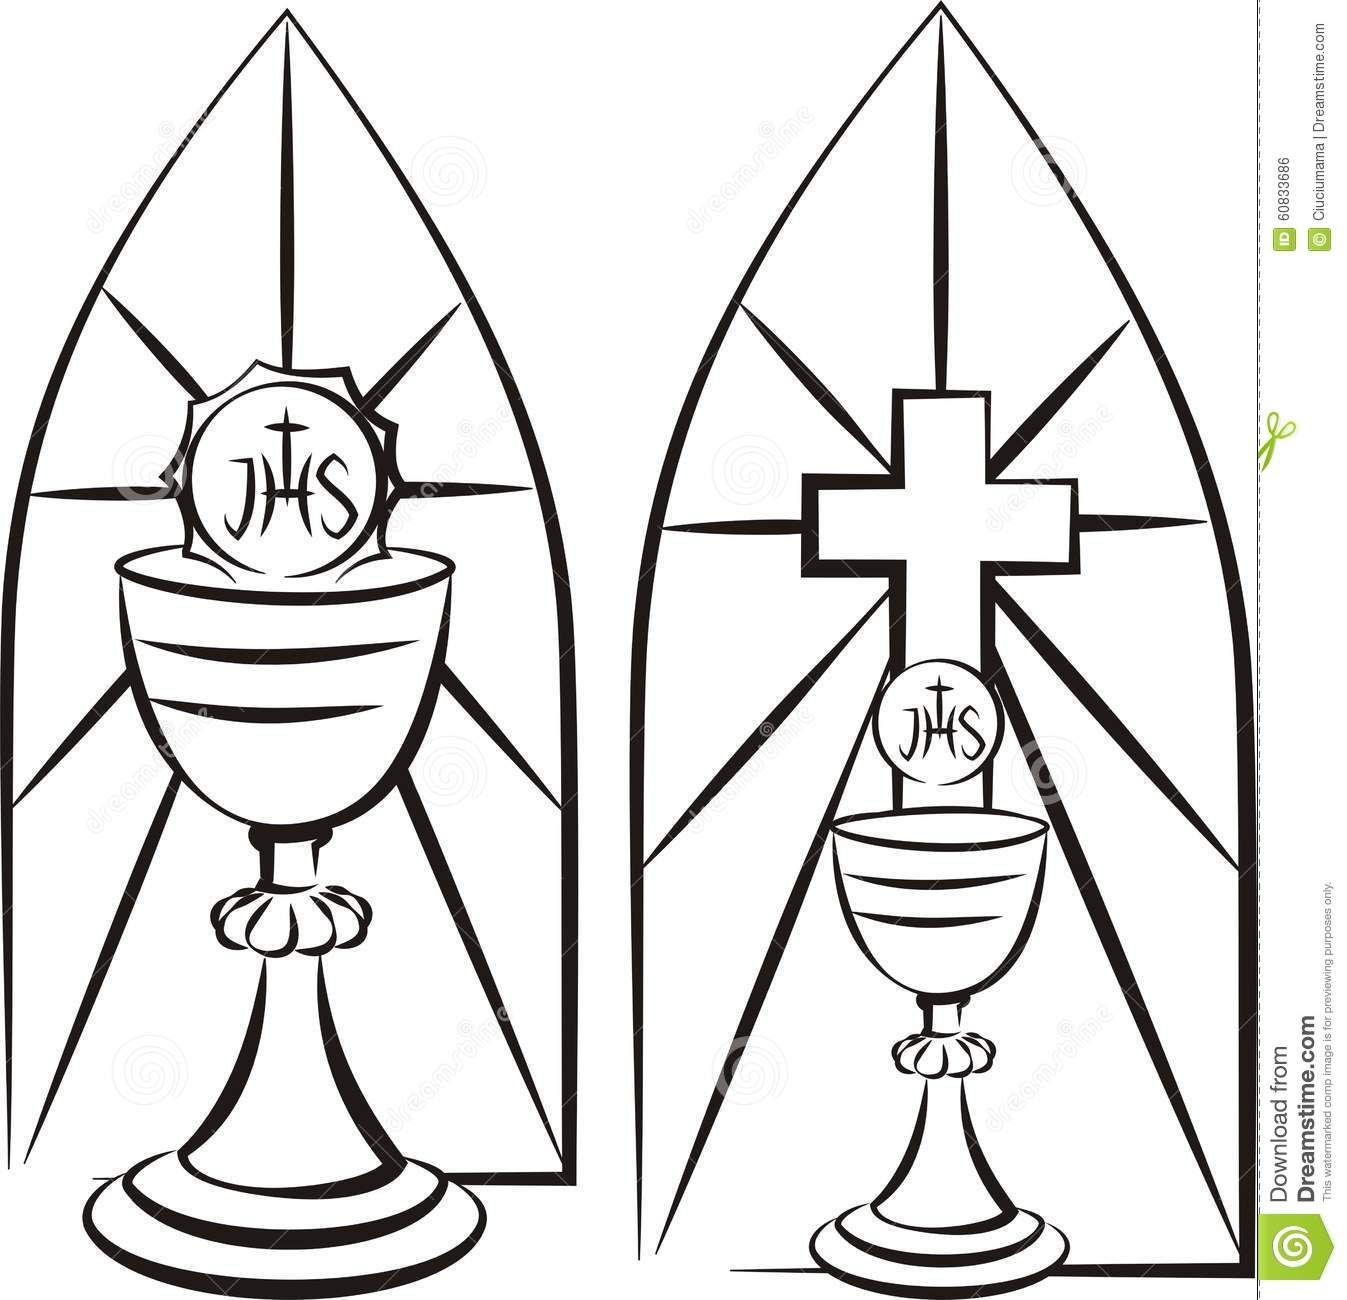 Image result for Stain Glass First Communion Banner Template.